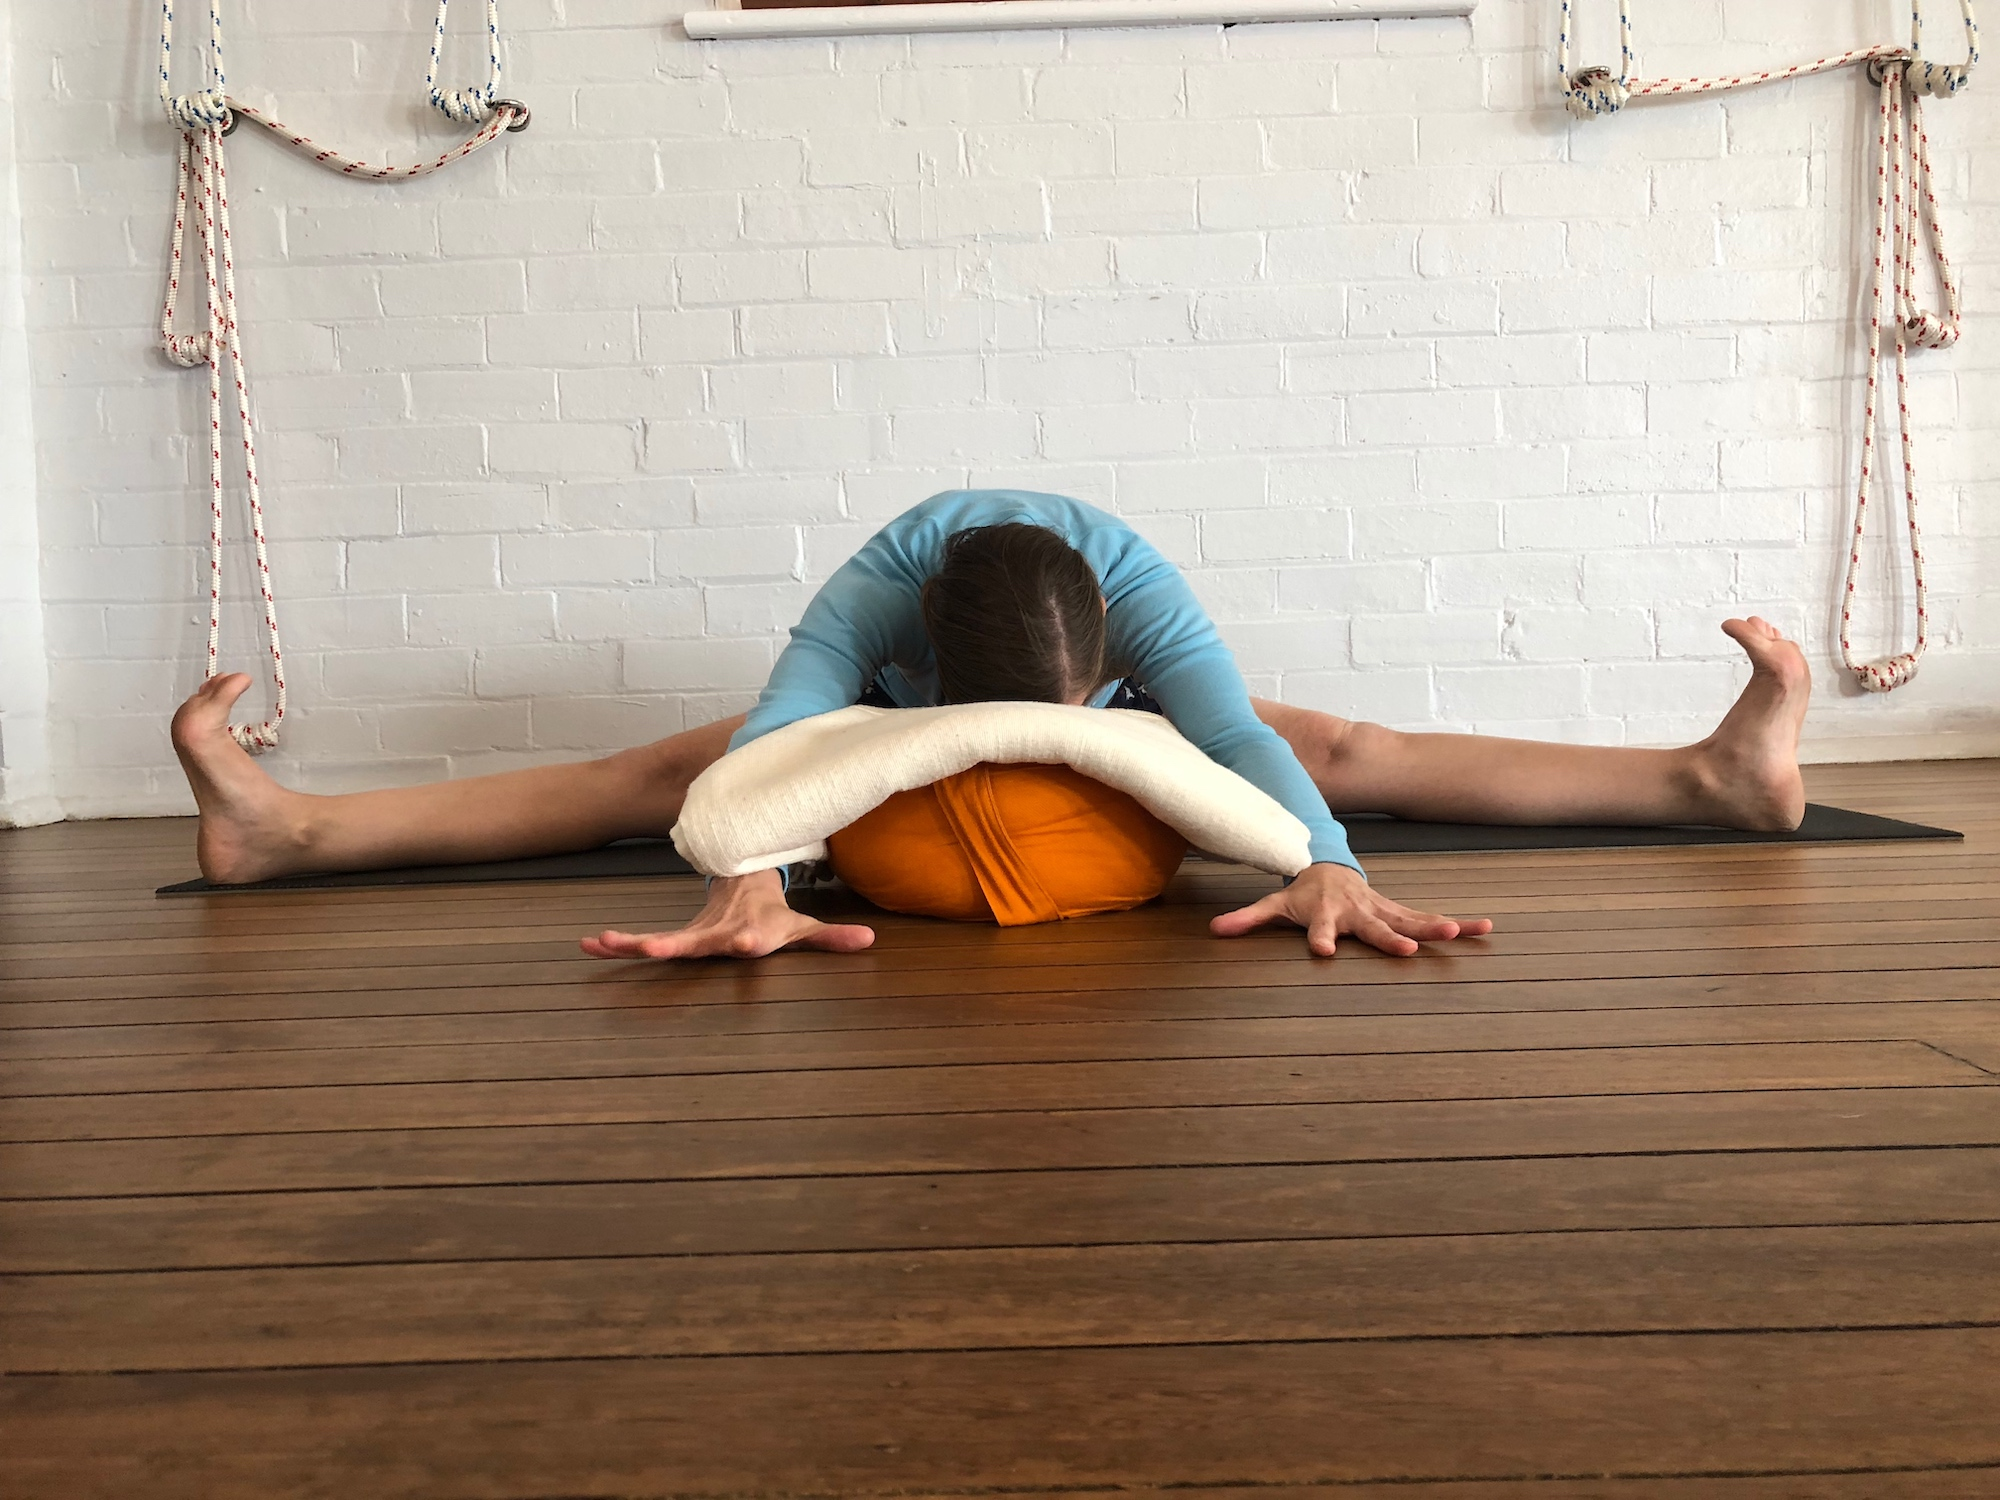 upavishta konasana supported yoga pose at Hamilton Yoga Iyengar Yoga school in Newcastle New South Wales